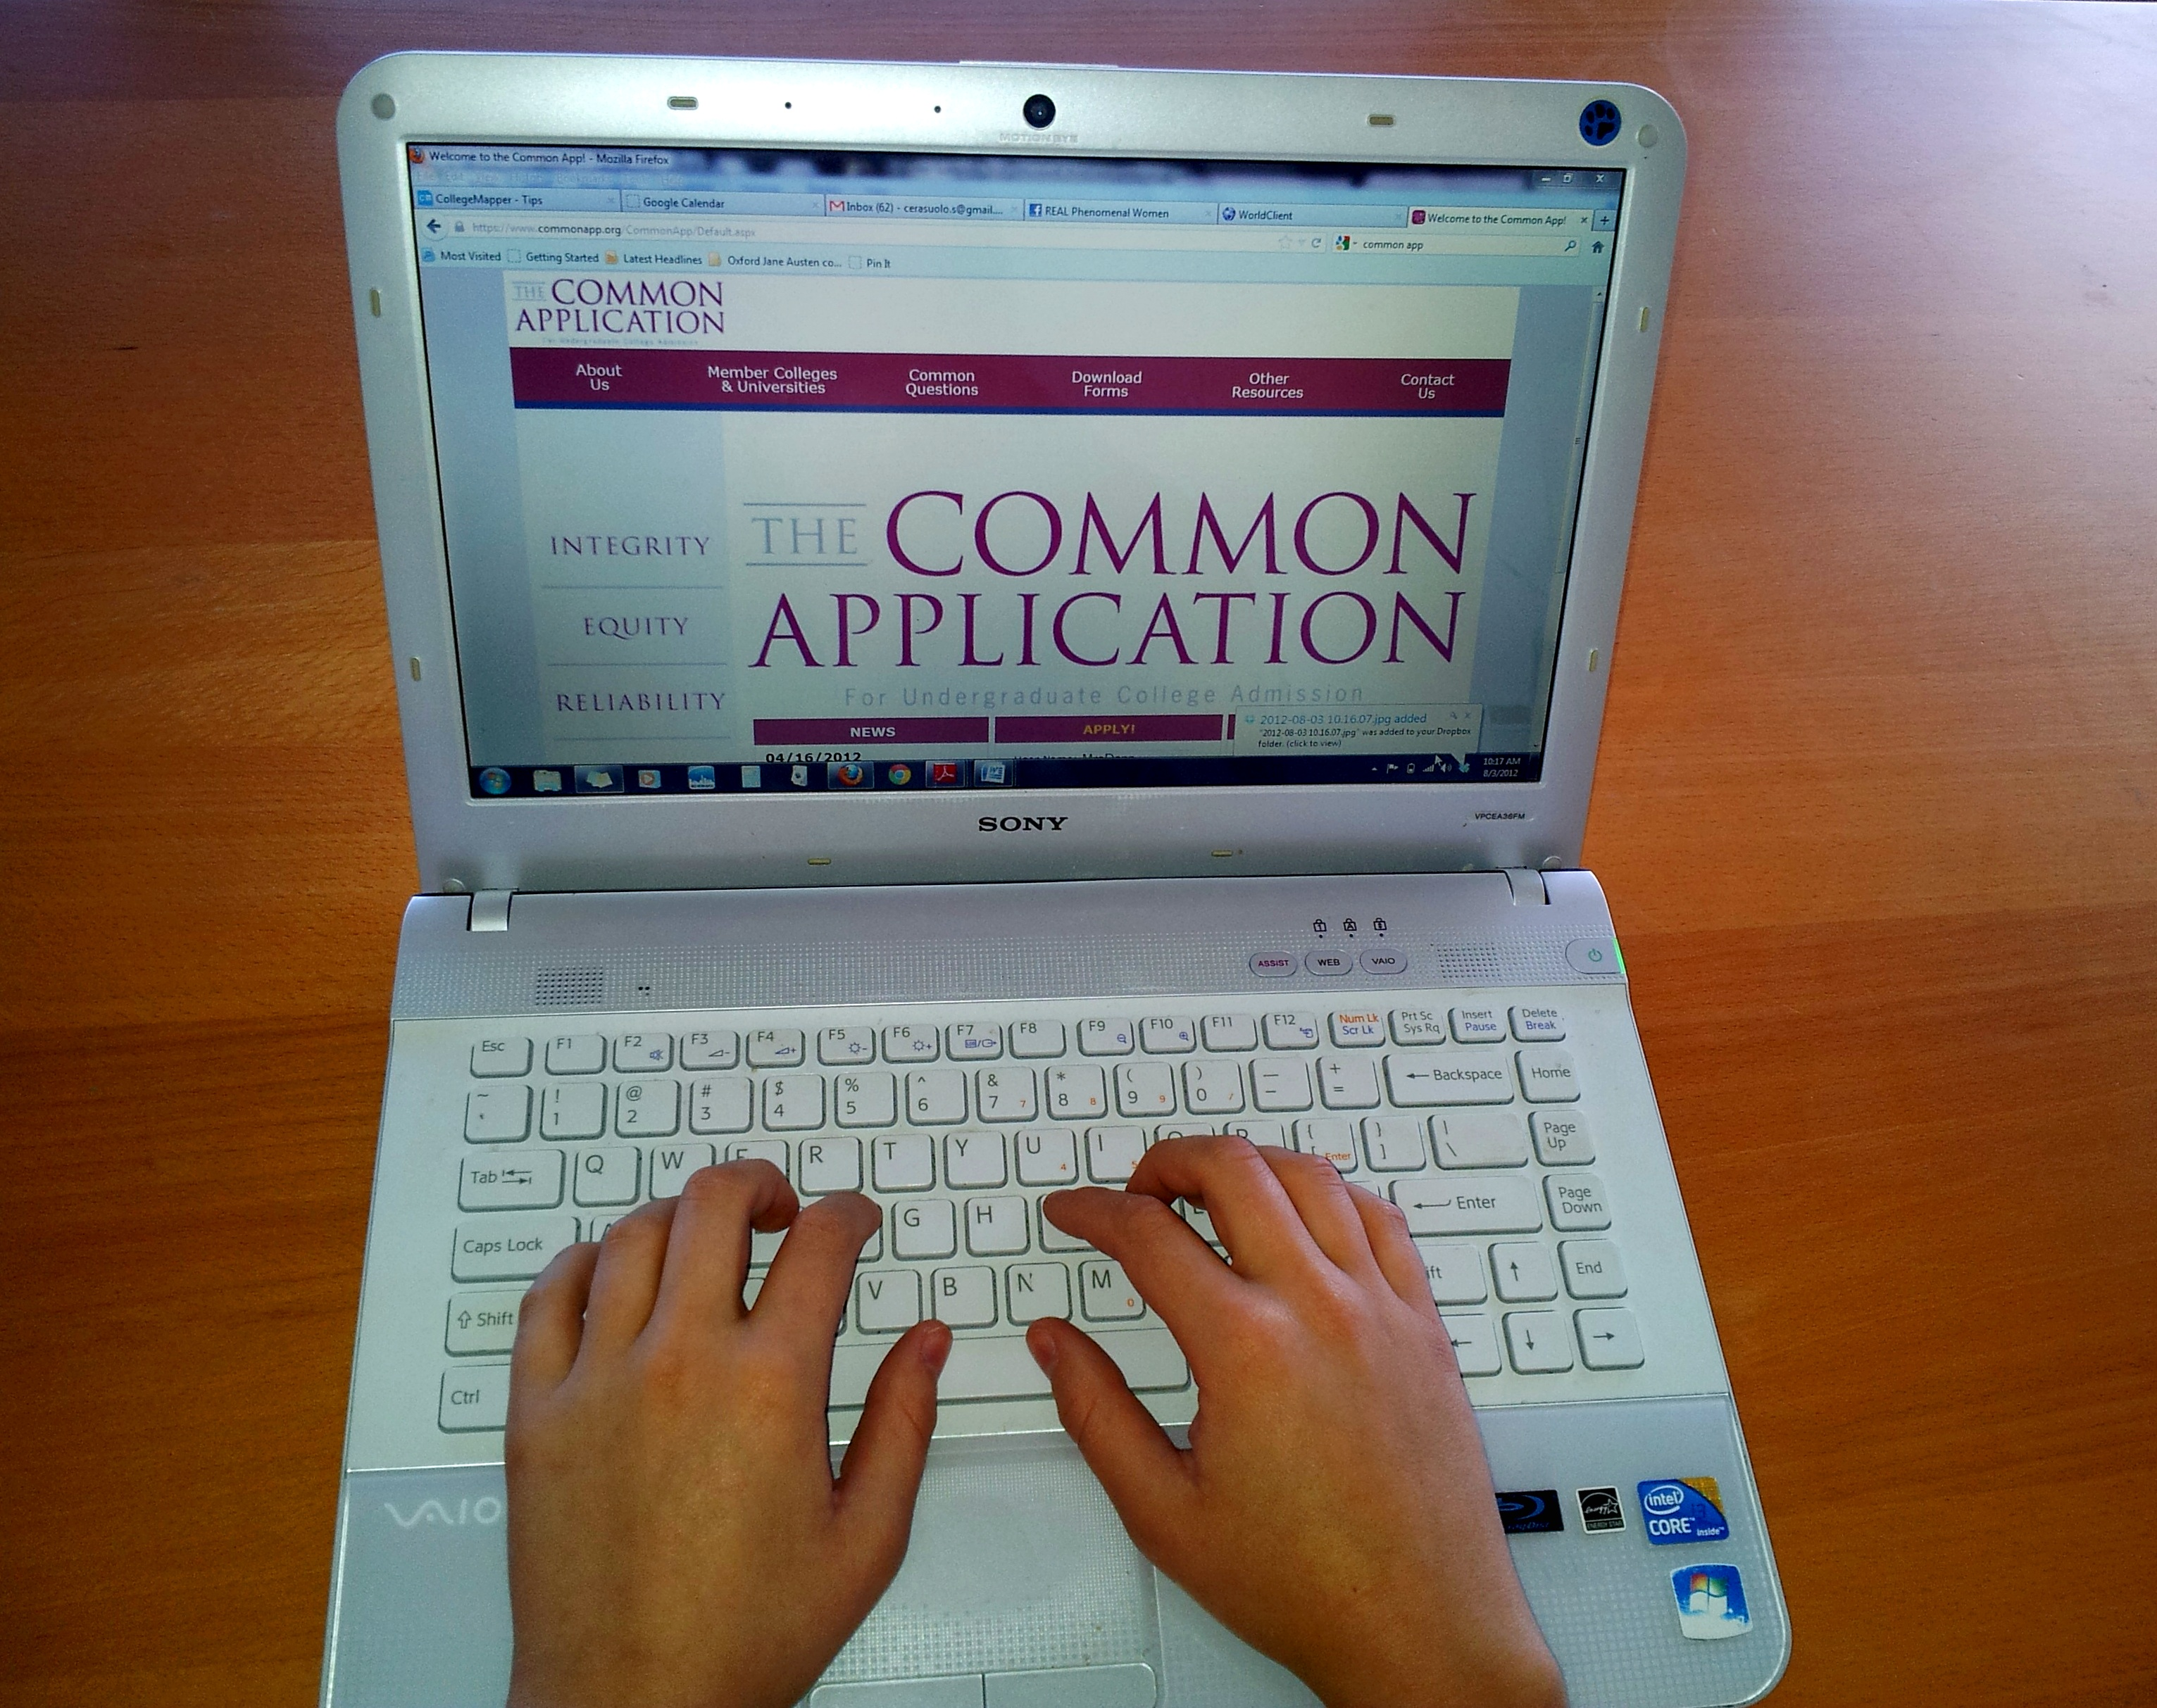 027 Essay Example Commonapp1 Best Common App Magnificent Essays 2018 Ivy League New York Times Full